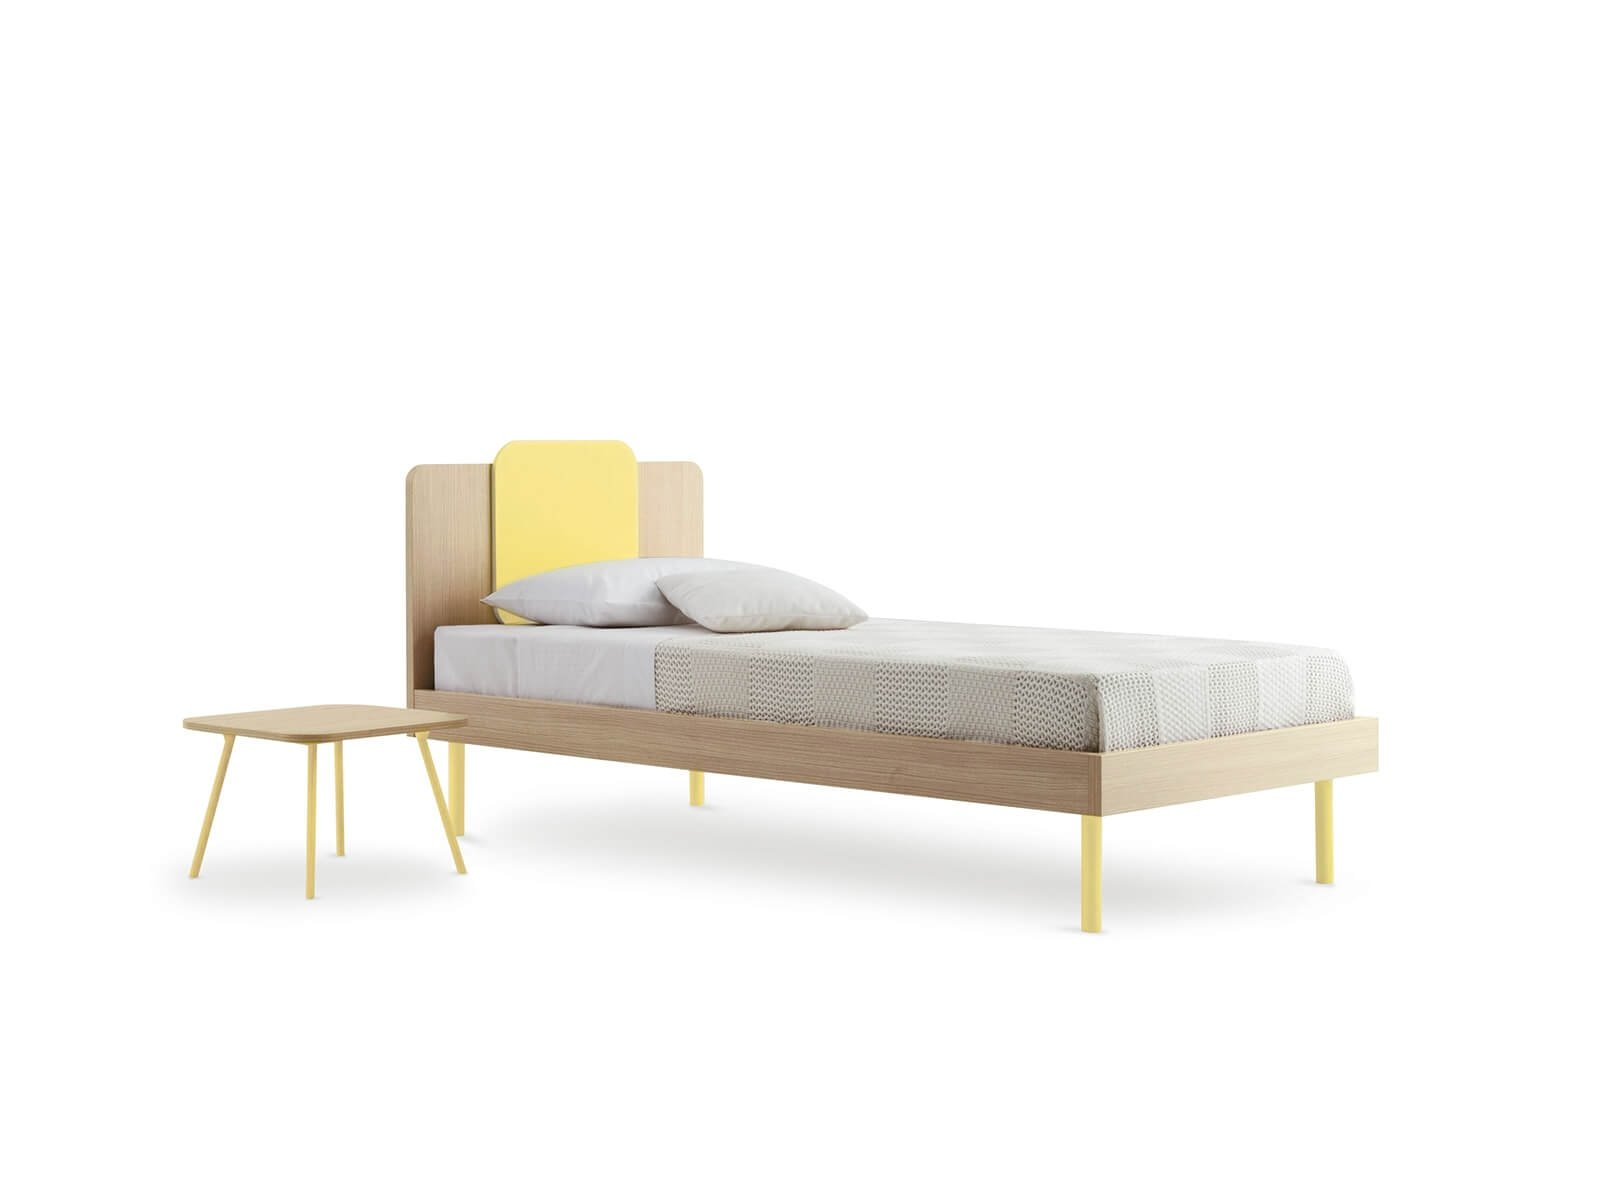 Quadro single bed